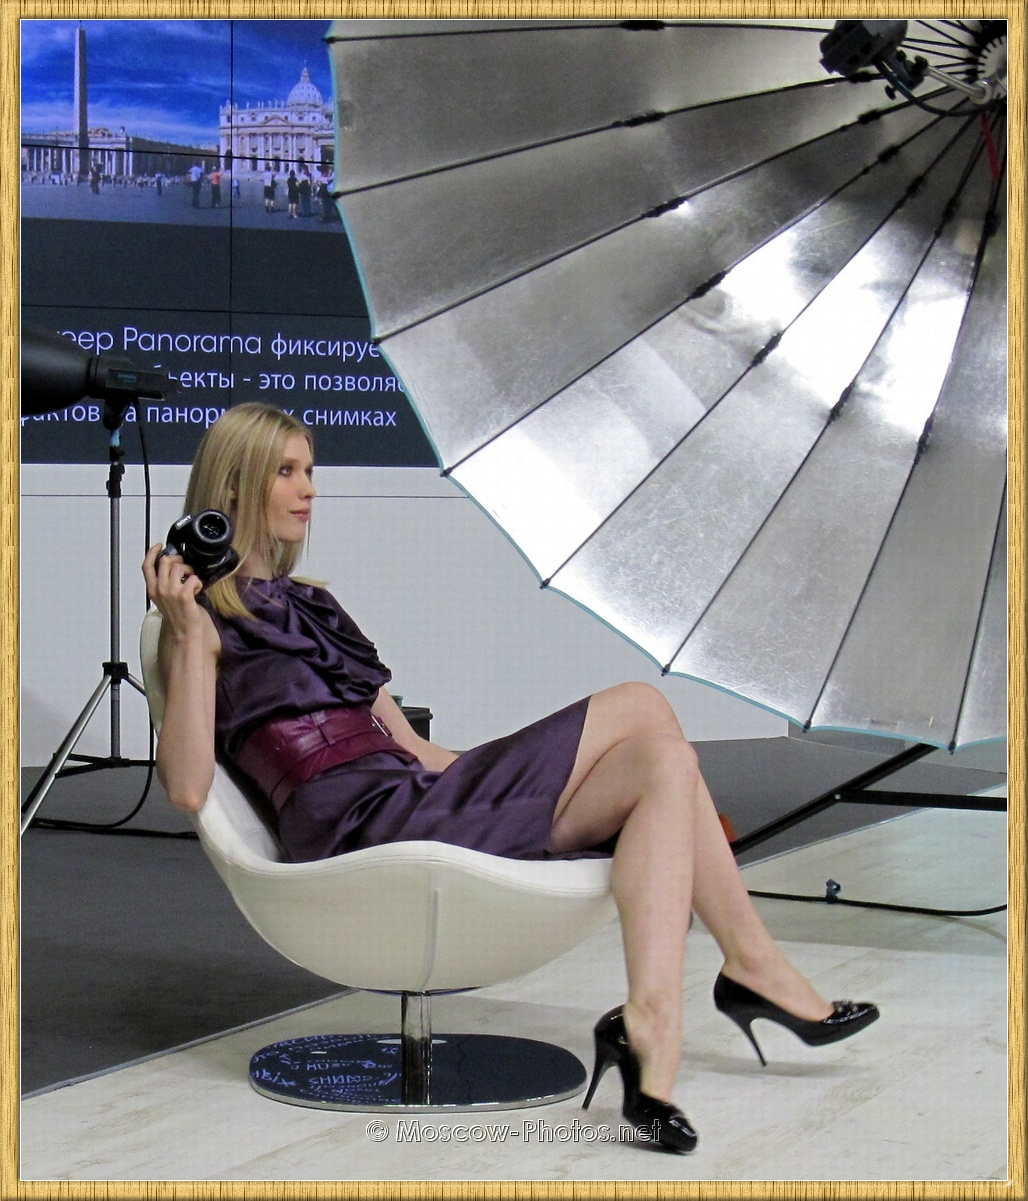 Blonde Russian Model Posing with Sony Photocamera